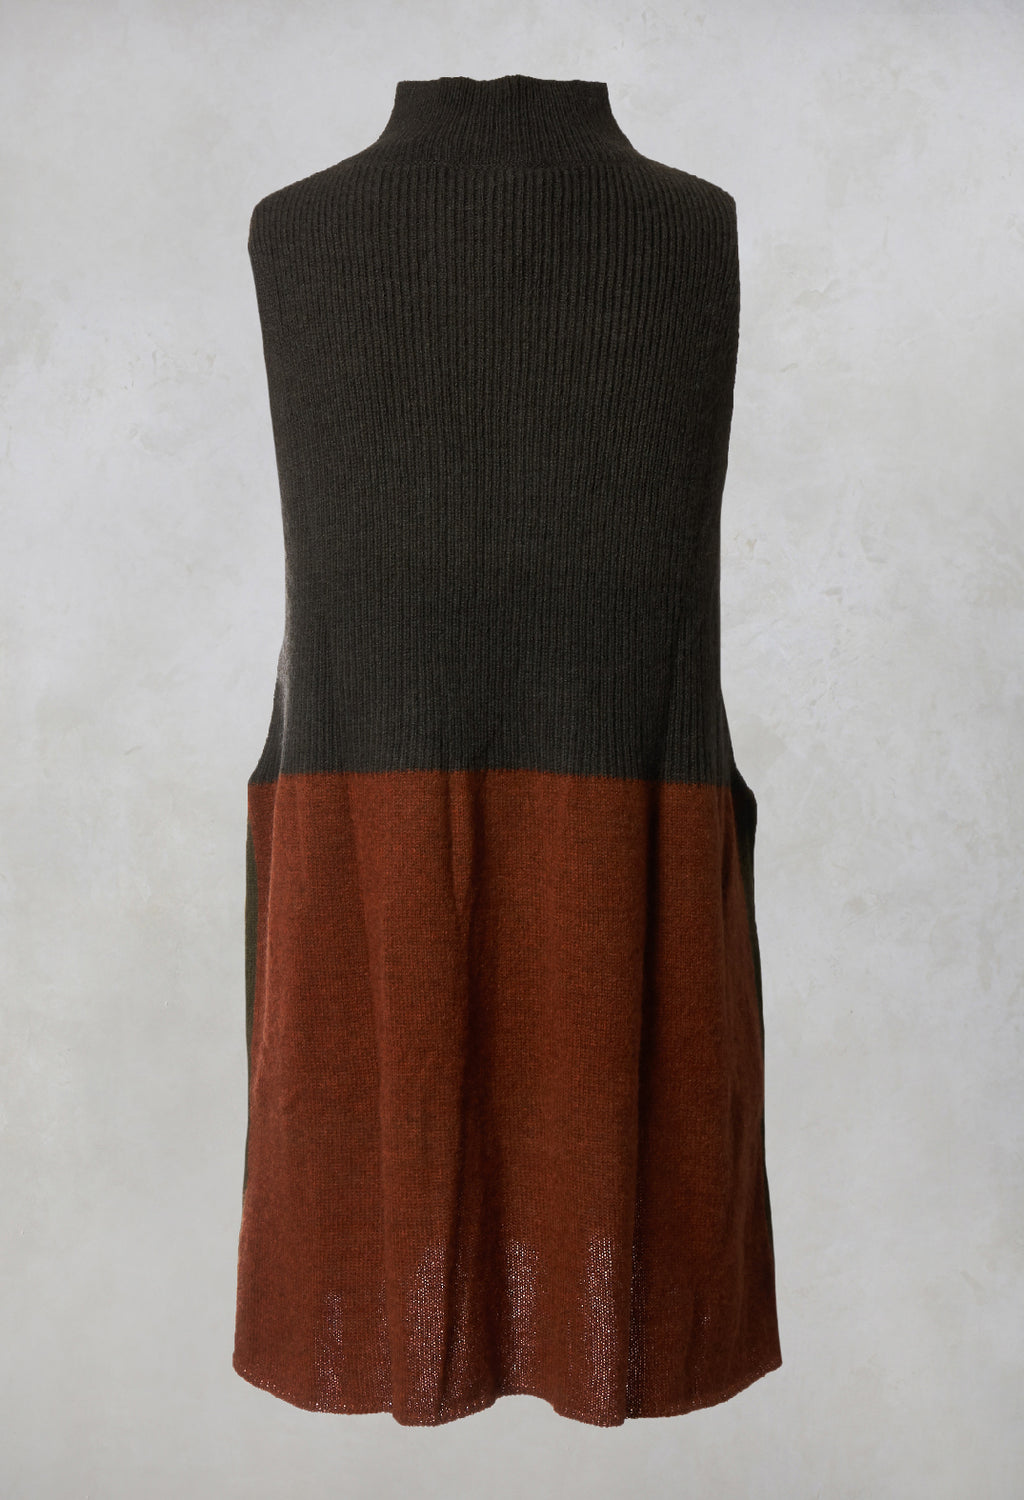 Ribbed Sleeved Jumper in Charcoal / Burnt Slenna